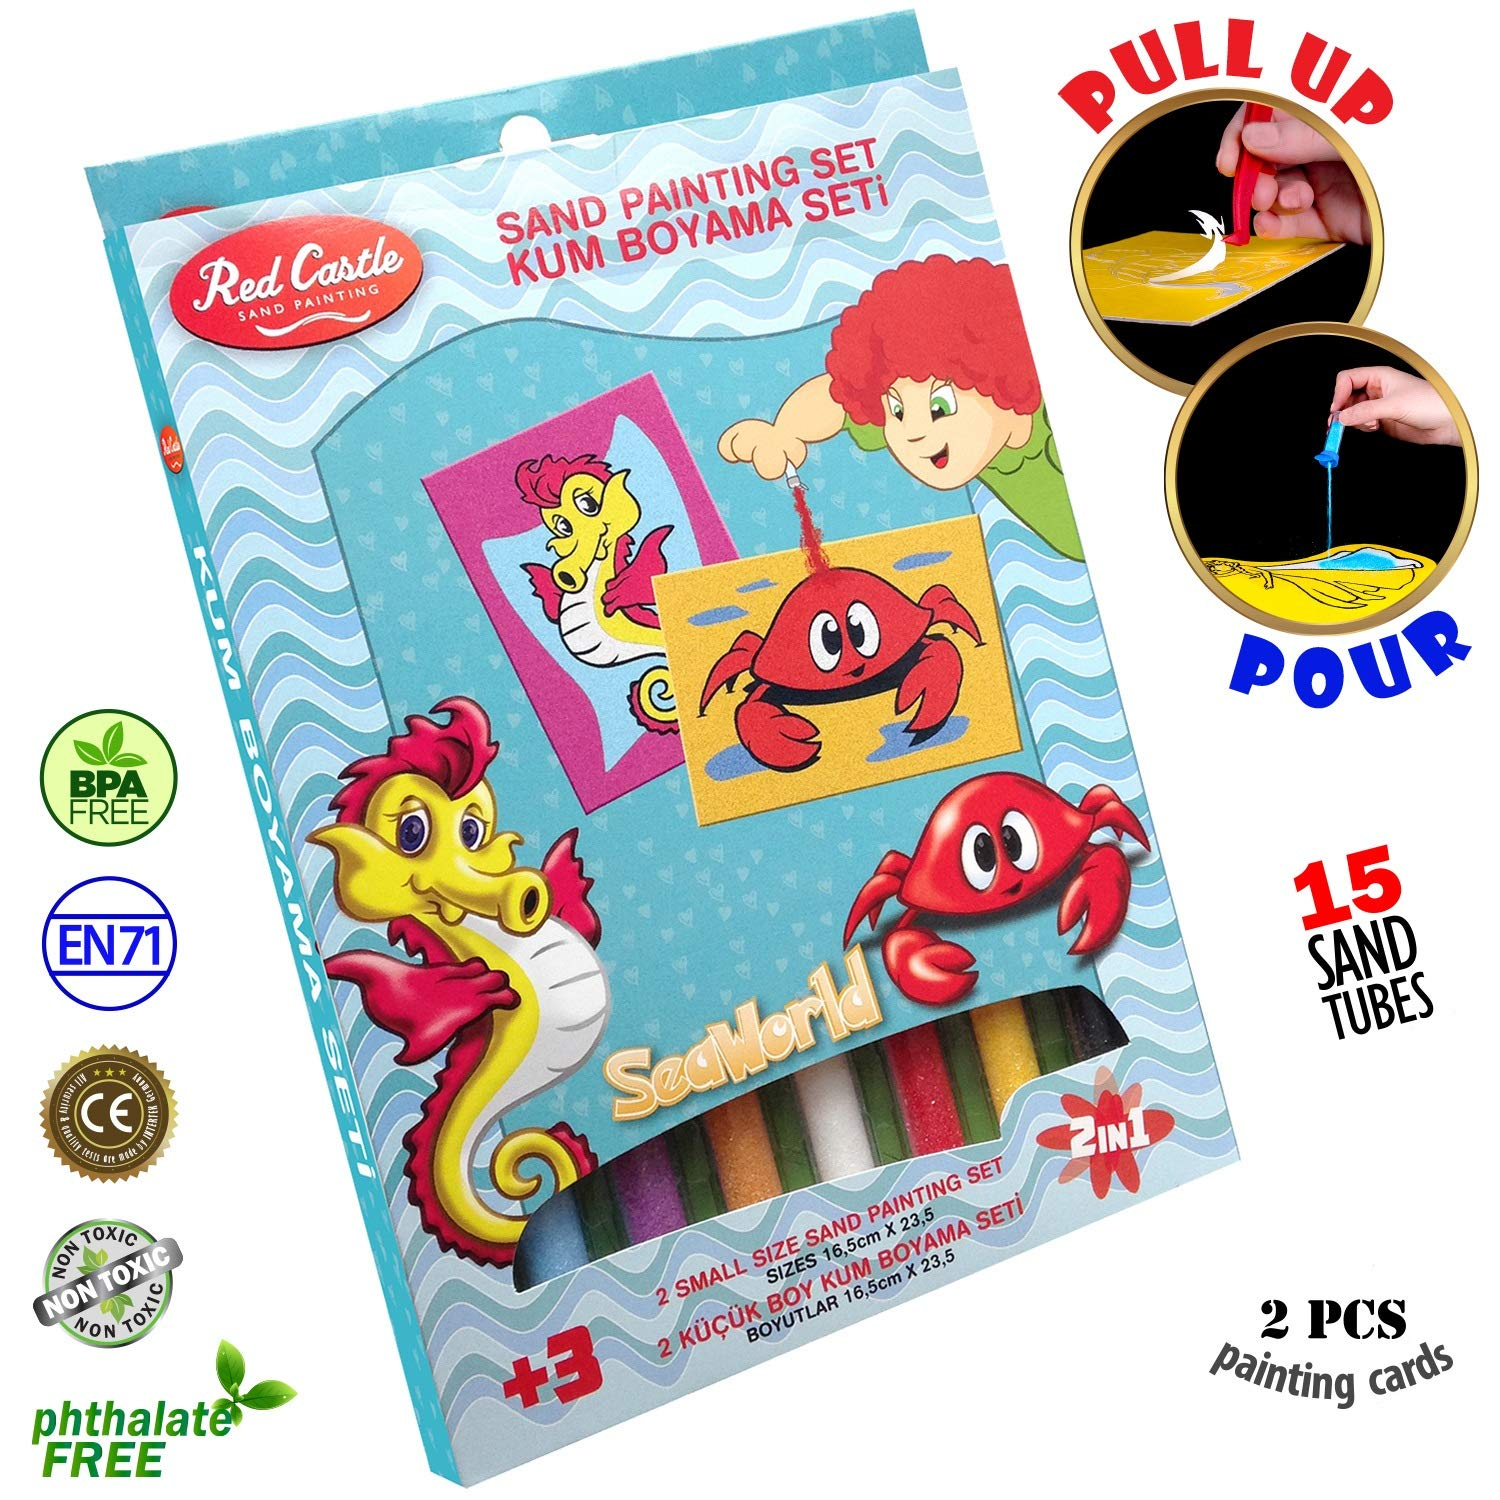 New in USA.. The most Famous Sand Art Kits for Kids in All Europe. RED CASTLE Sand Painting Art Kits, Colored Sand Painting, DIY Learning Craft Kit, 15 Colored Sand Tubes - SEAHORSE & CRAB